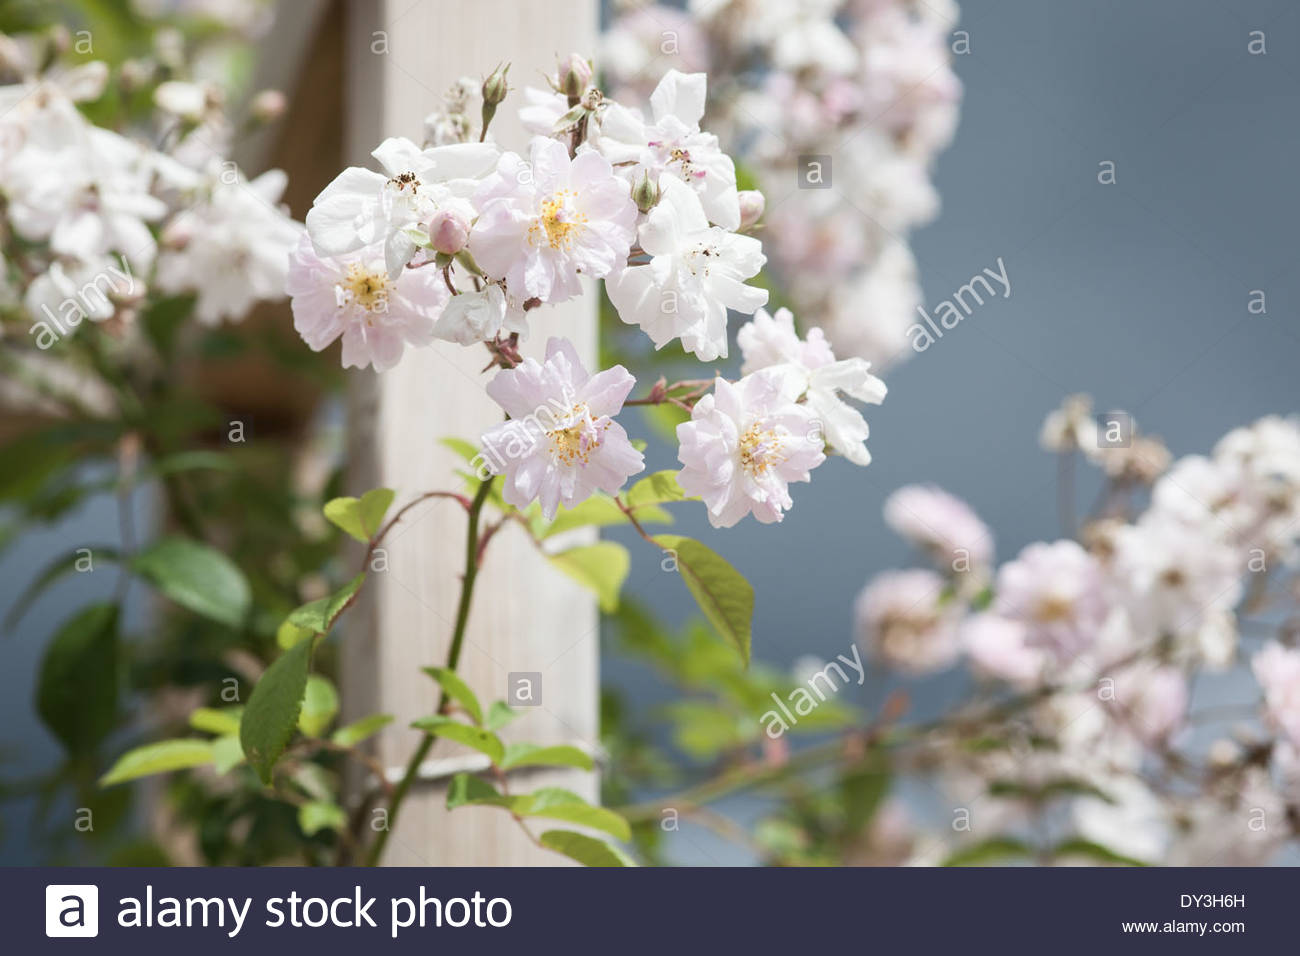 Rambling rose - Stock Image